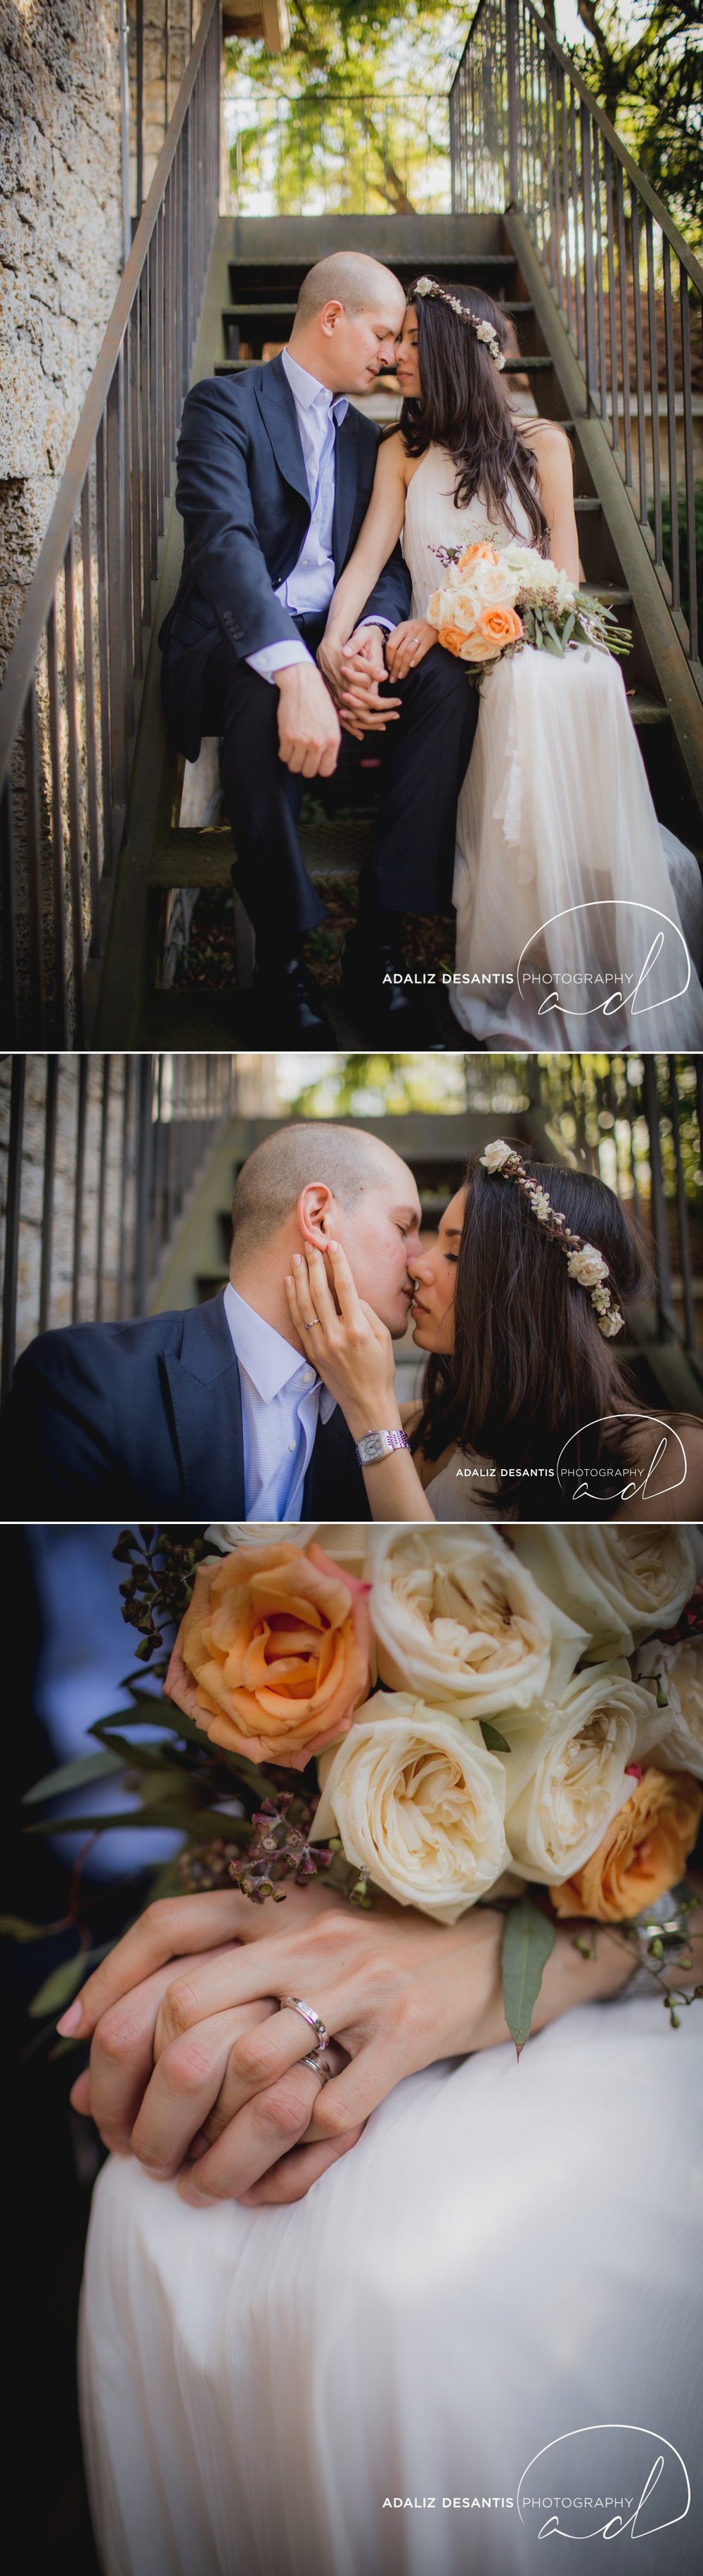 plymouth-congregational-church-coconut-grove-miami-elopement-matrimonio-civil-coral-gables 25.jpg